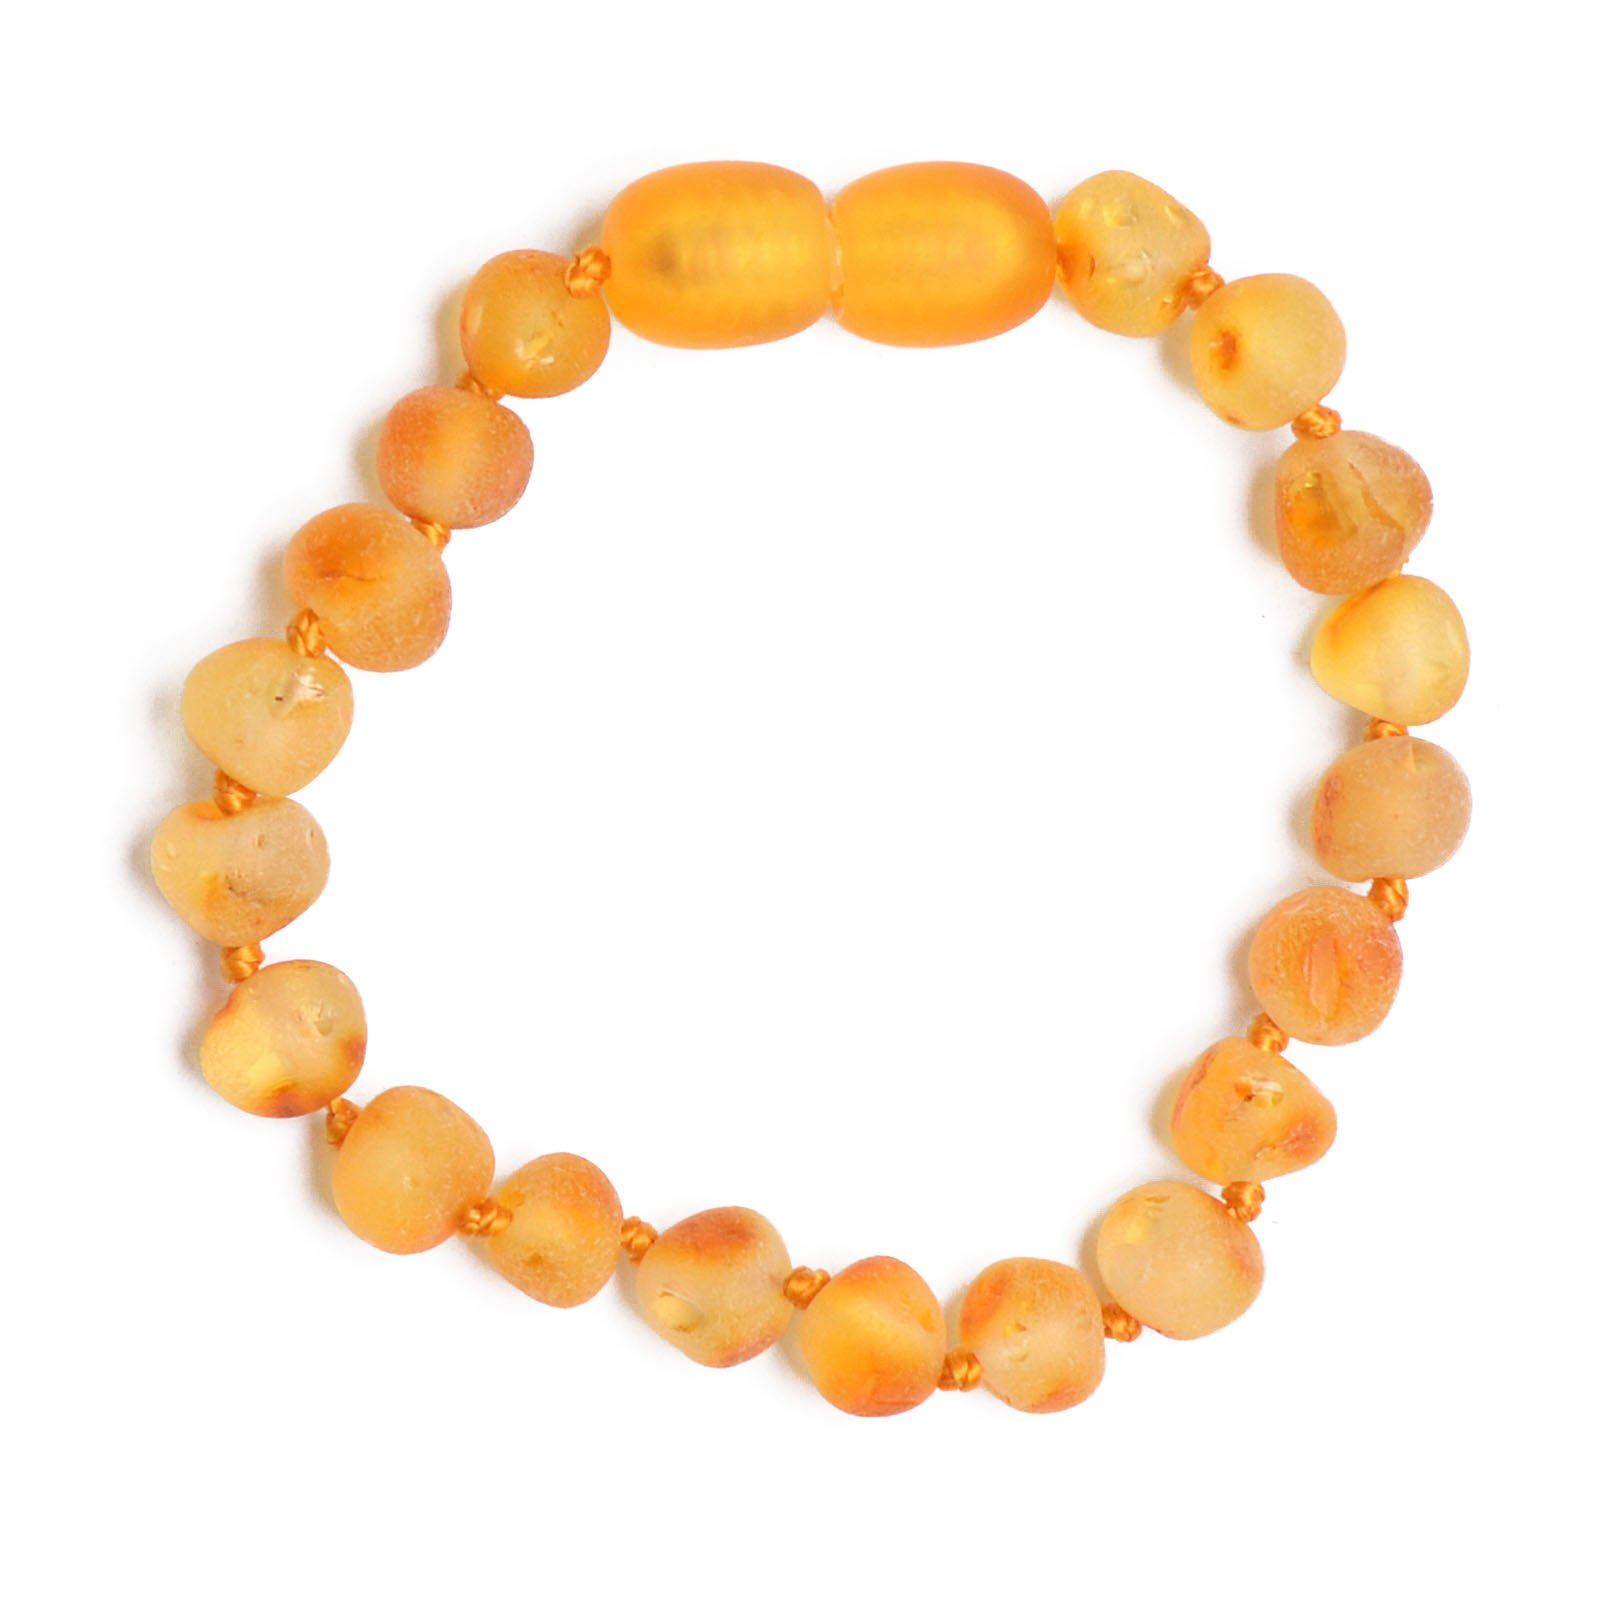 Genuine Amber - Baby Unisex Teething Anklet / Bracelet - 5.9 Inches - Raw Not Polished 100% Natural Baltic Amber Beads - Knotted Between Beads - With Plastic Screw Clasp - Honey